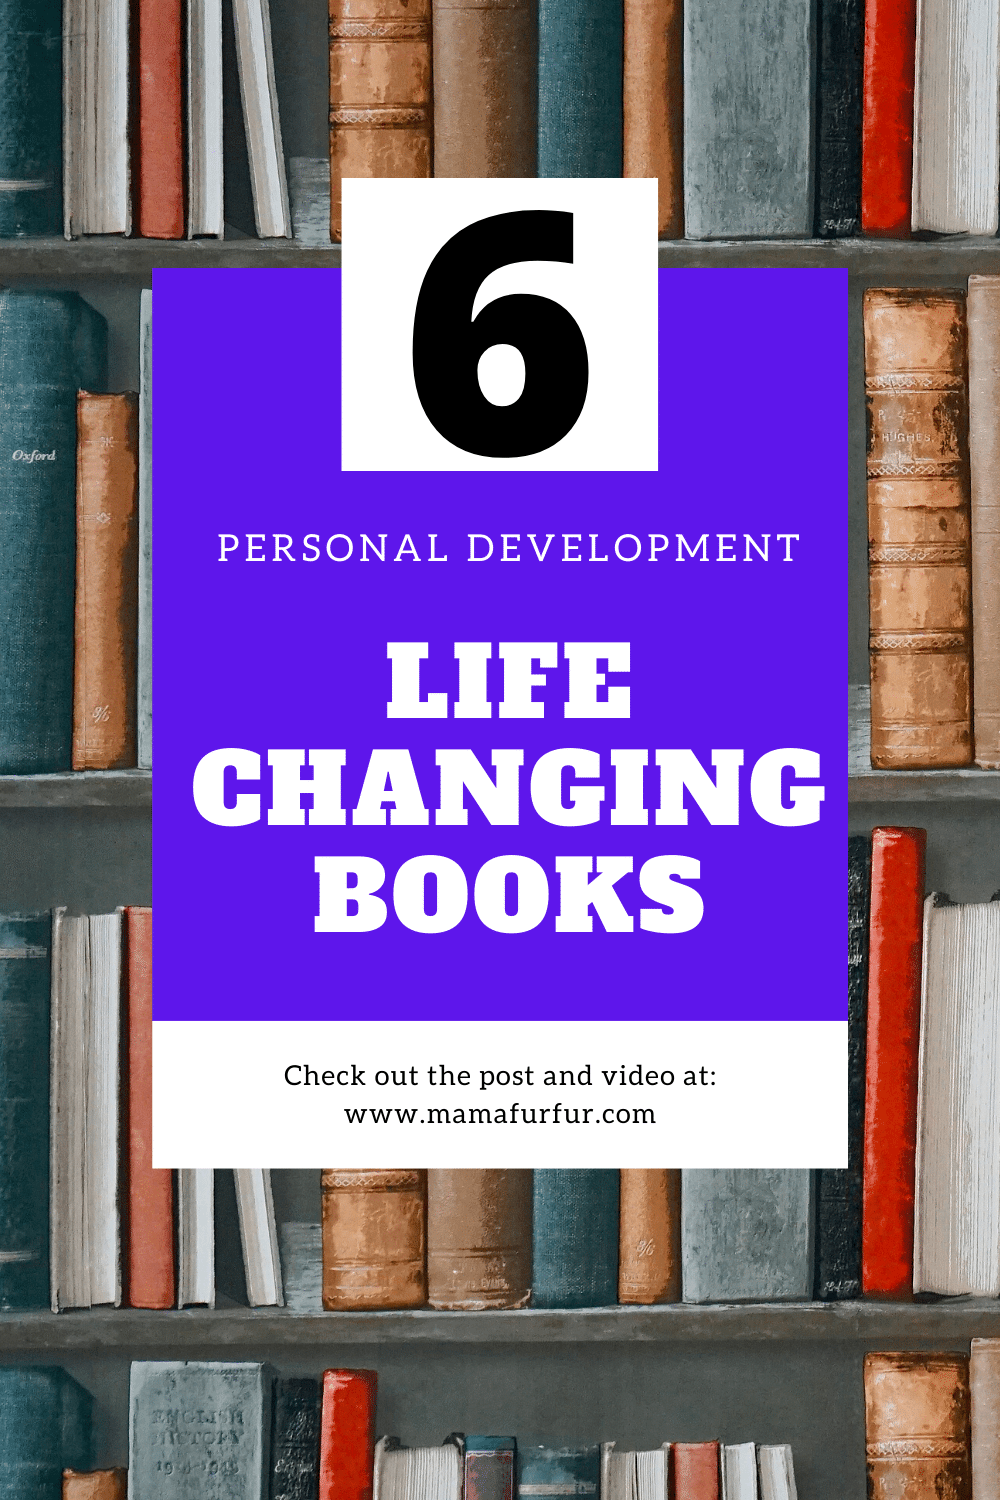 6 Life Changing Books to read in 2020 - Personal Development, Mindset & Money